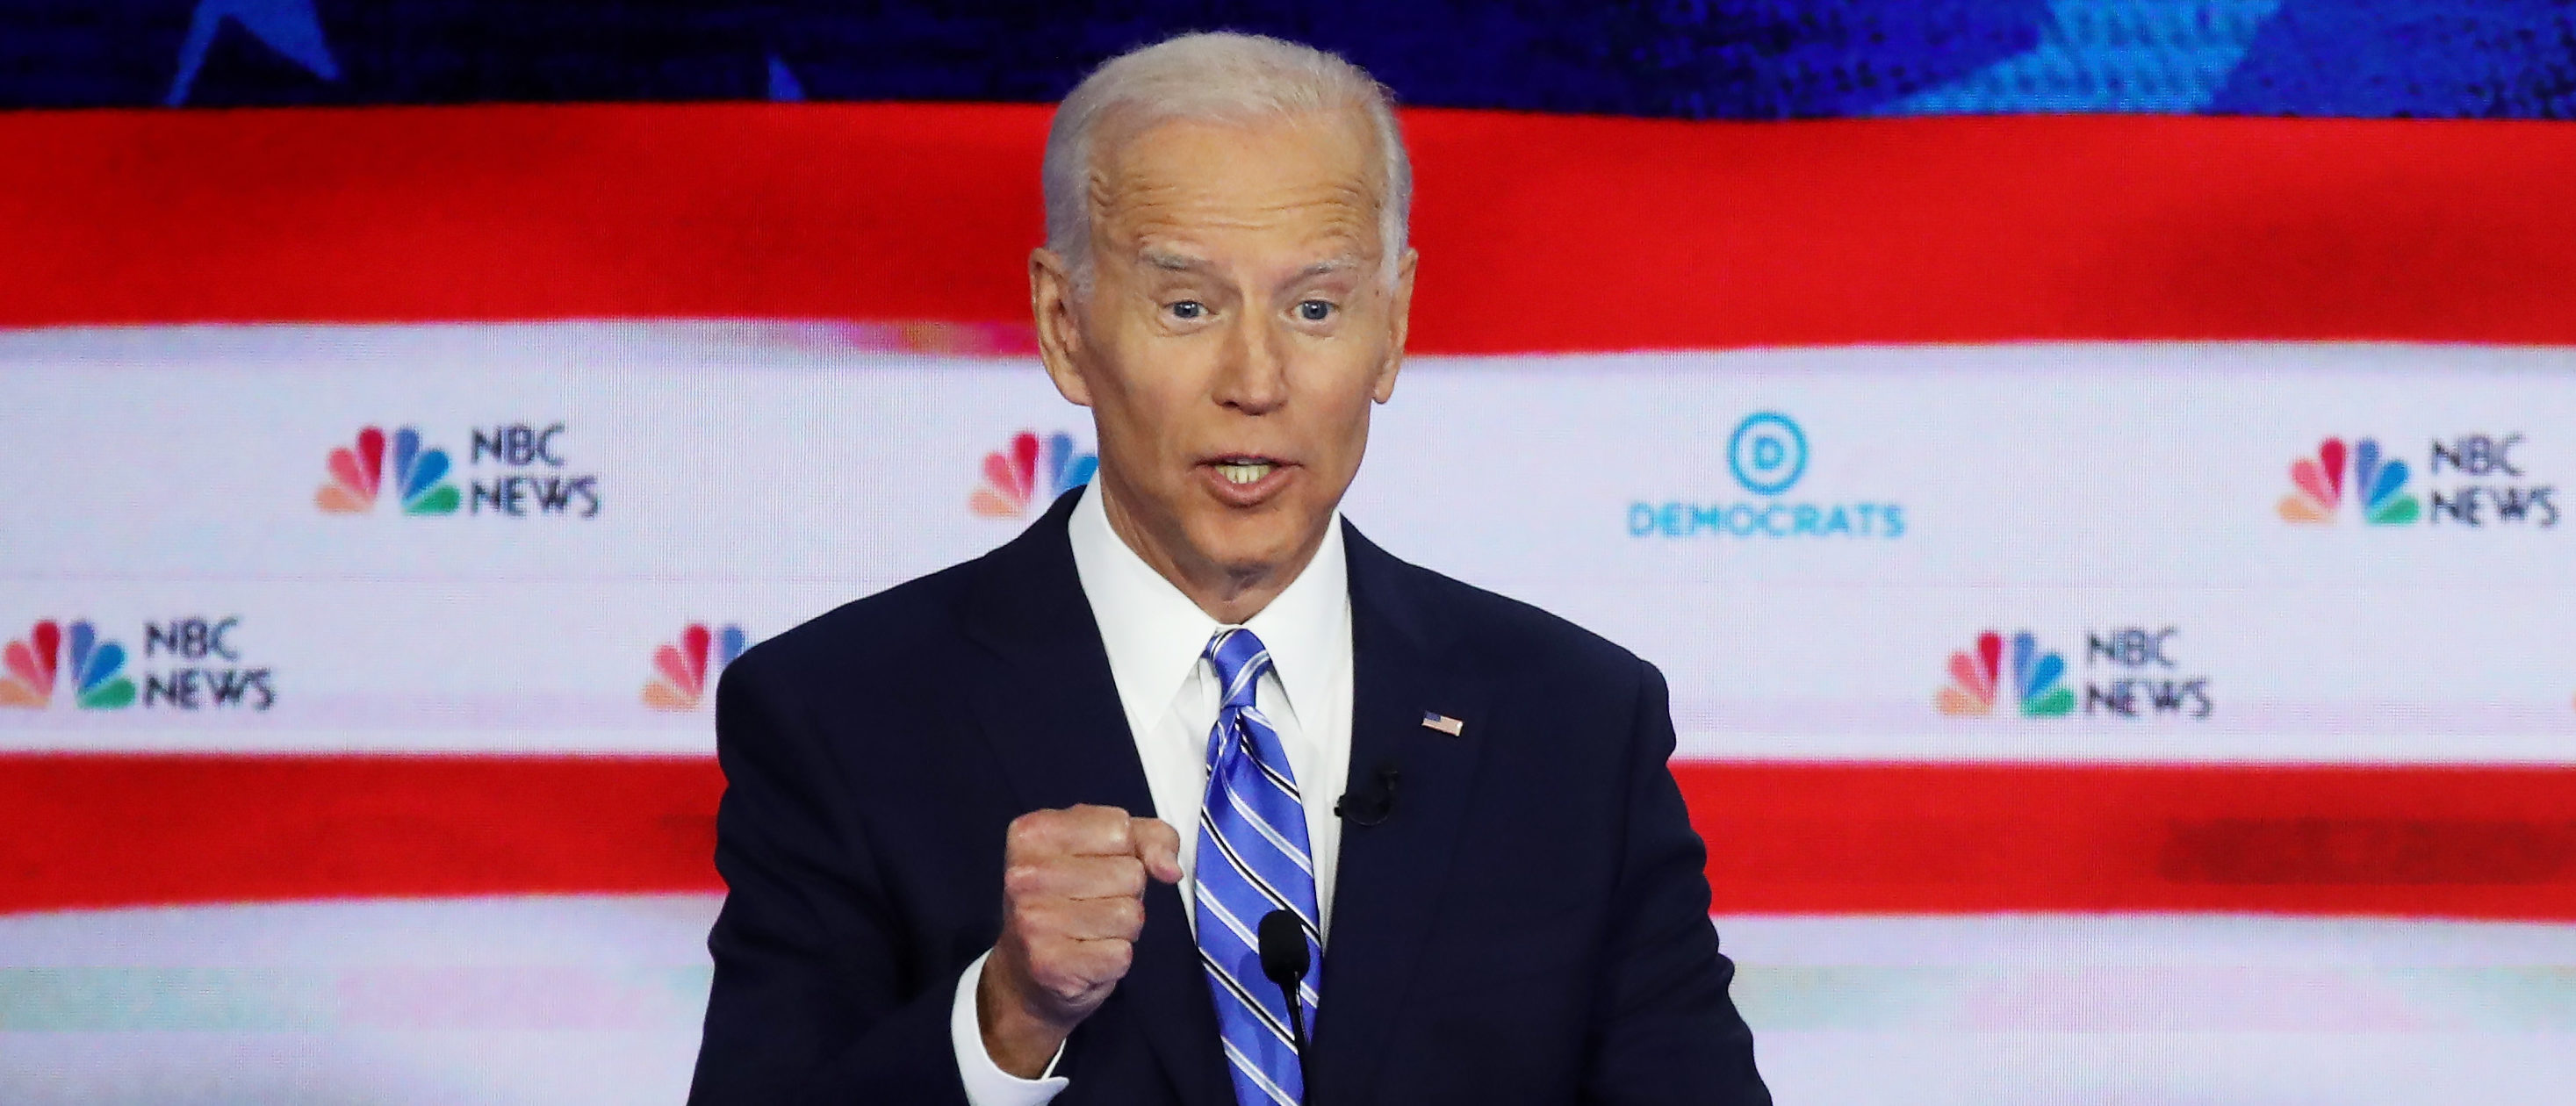 Democratic presidential candidate former Vice President Joe Biden speaks during the second night of the first Democratic presidential debate on June 27, 2019 in Miami, Florida. (Drew Angerer/Getty Images)